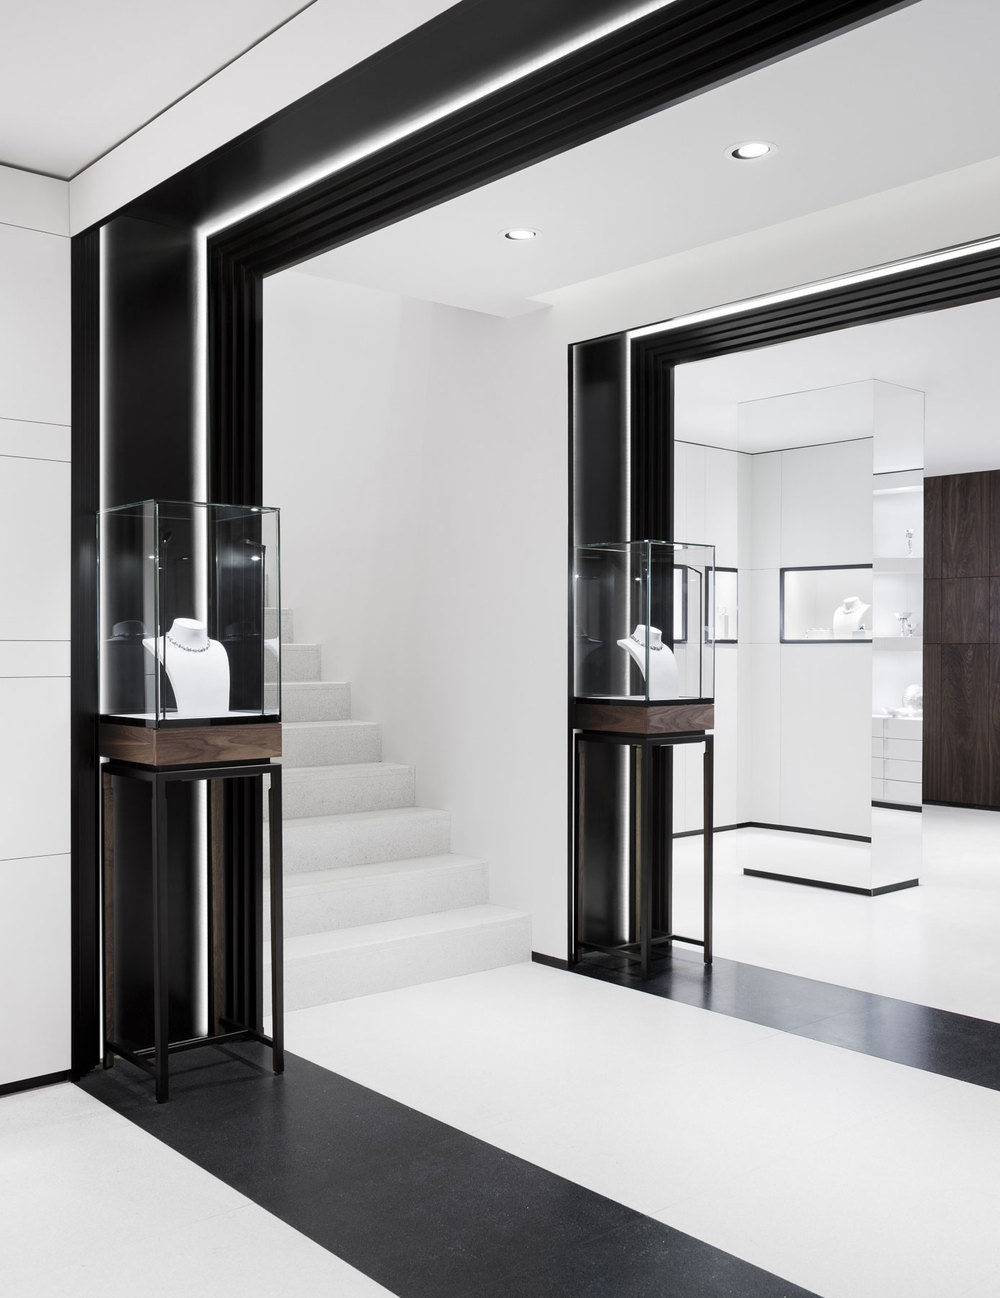 Stock Room Design: David Thulstrup Designs Symmetrical Space For Georg Jensen